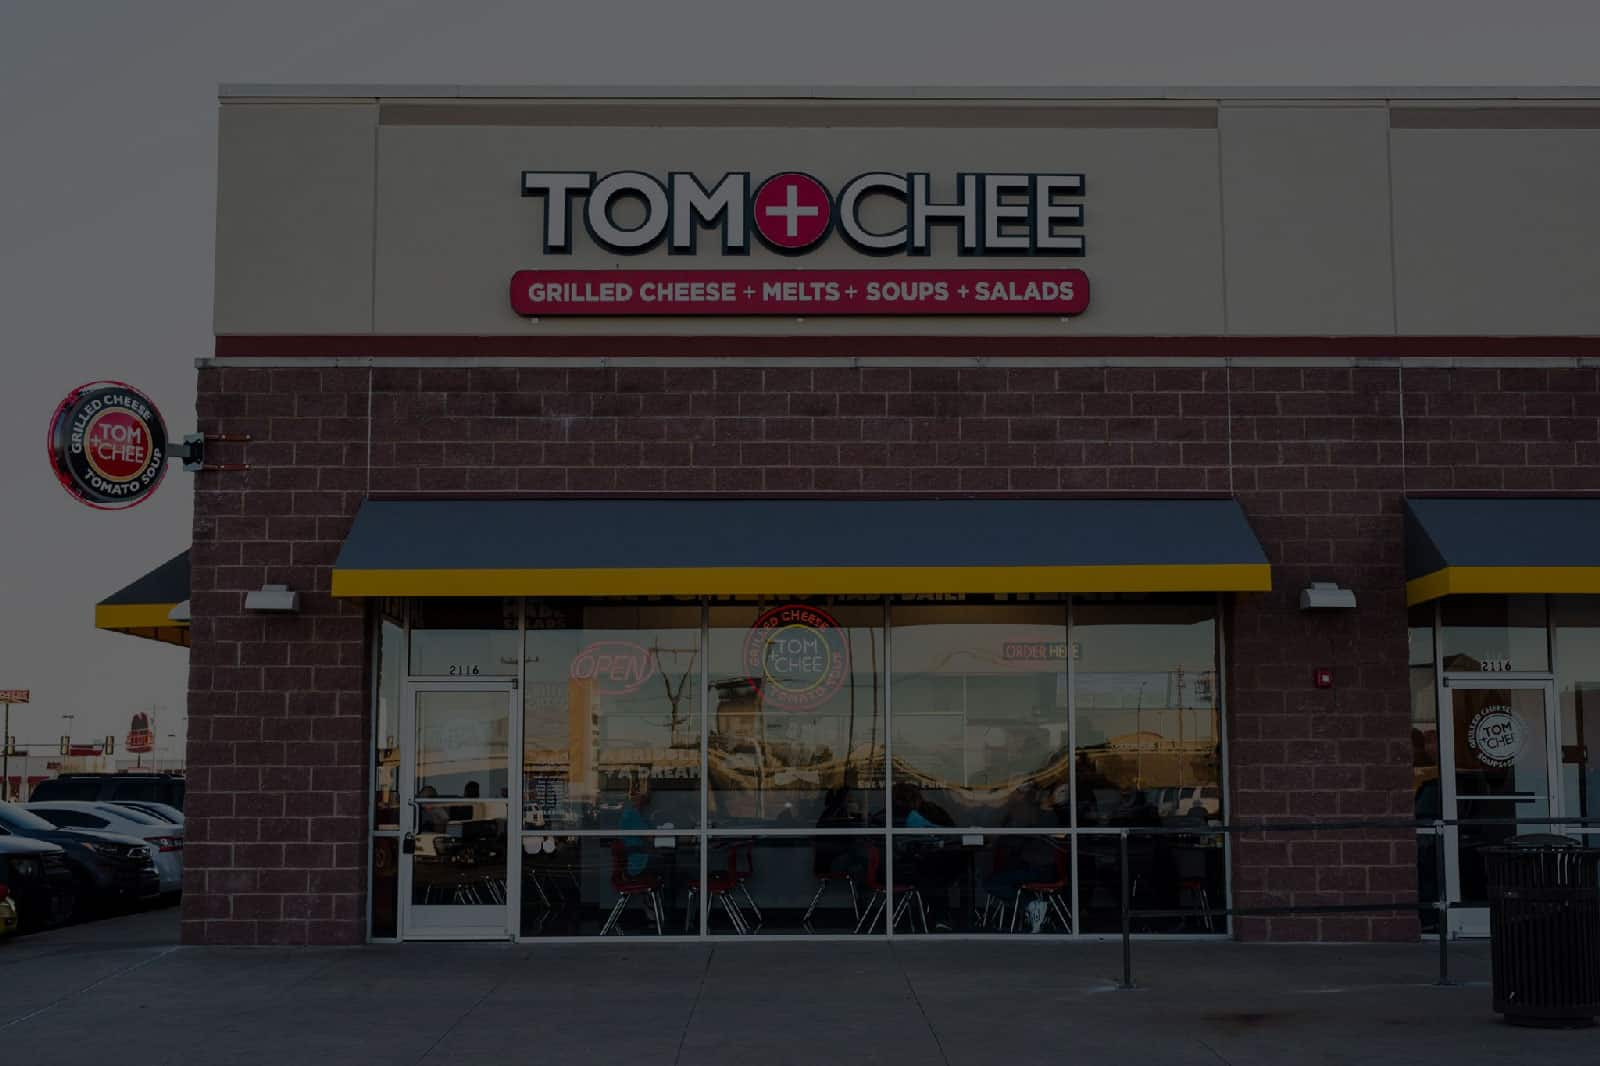 Tom & Chee storefront